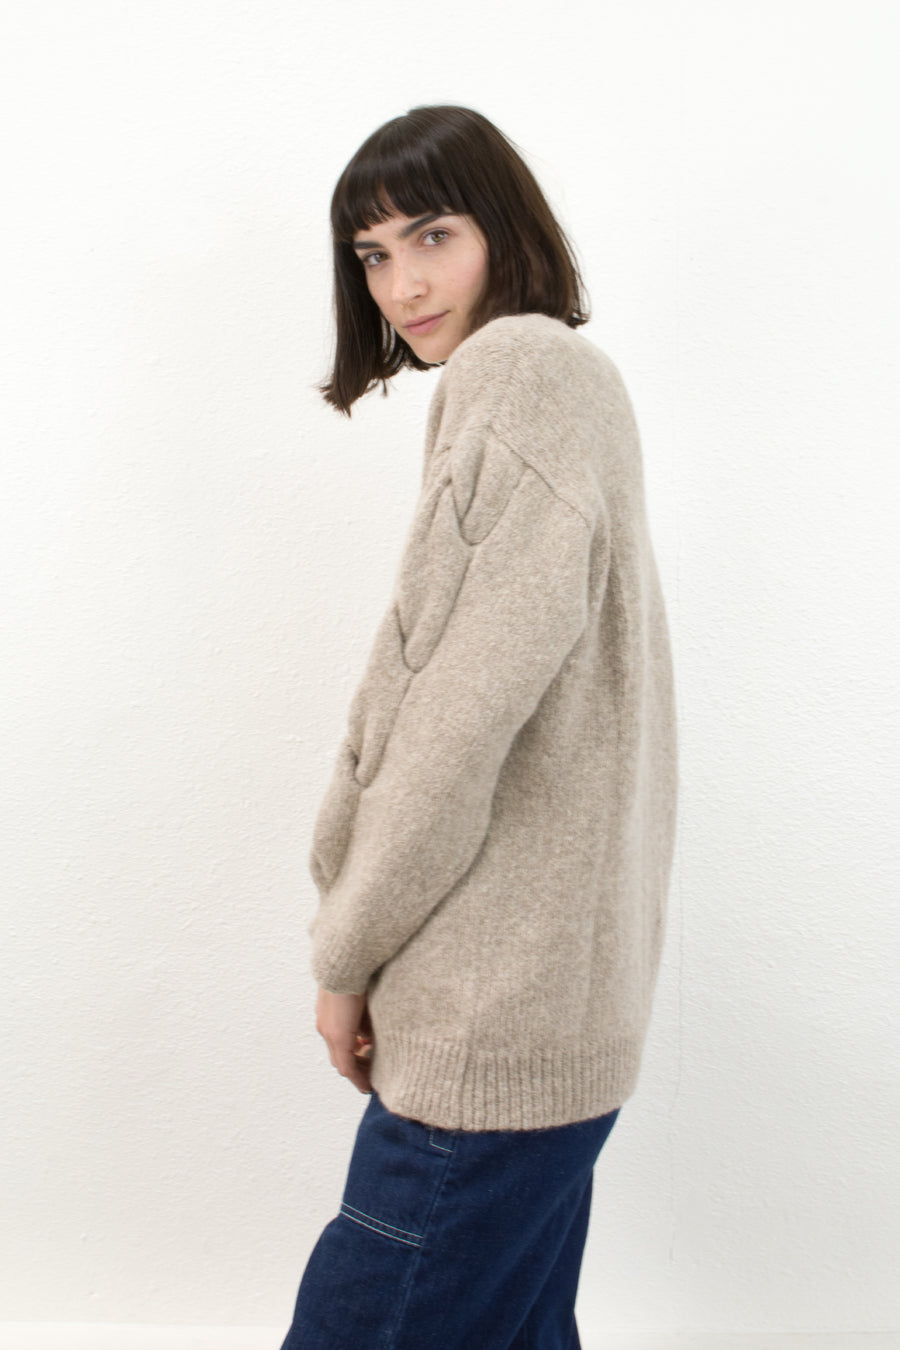 Oatmeal Twist Cardigan